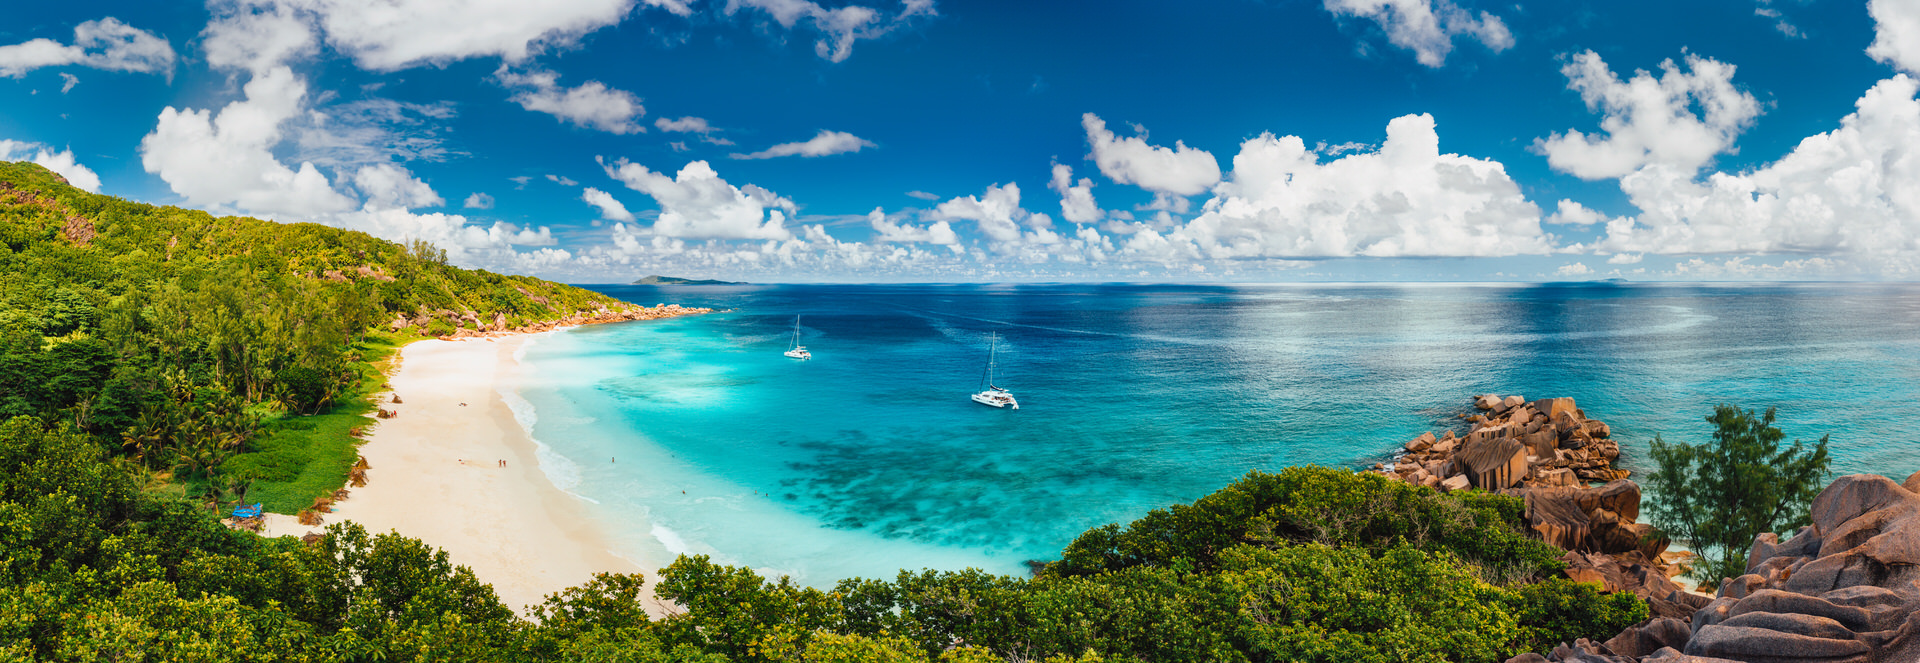 + About The Seychelles